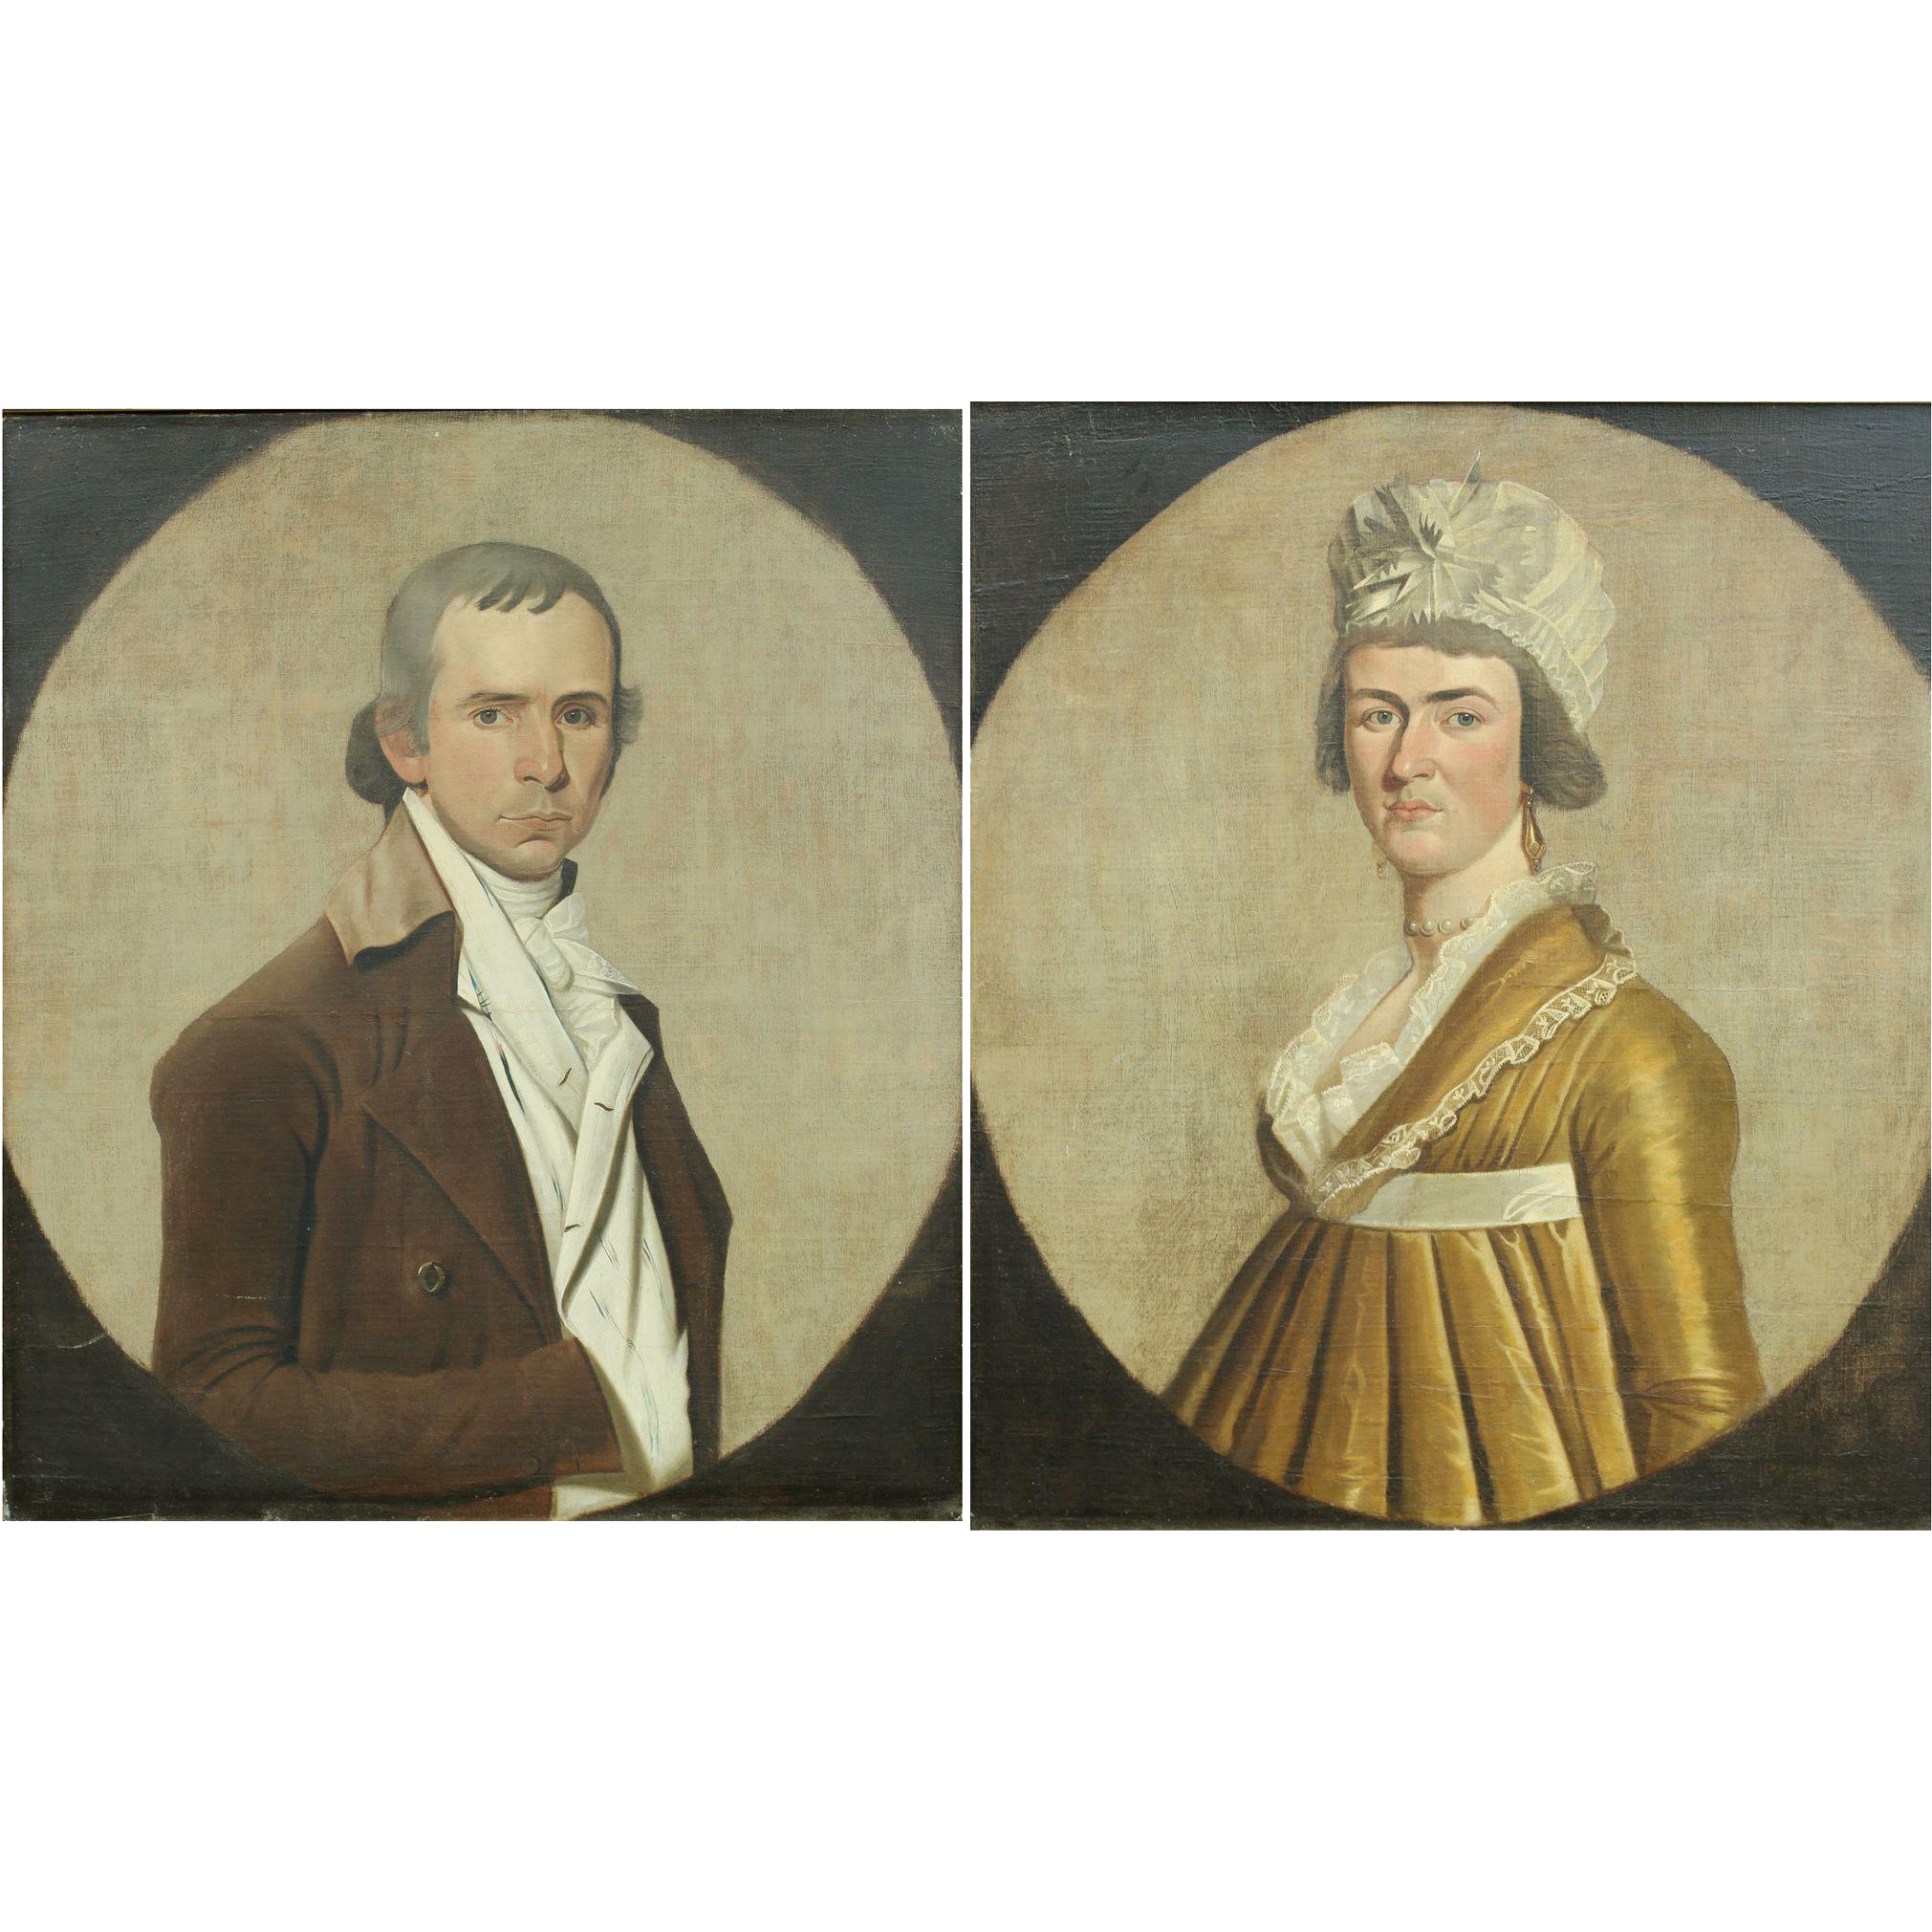 William Jennys Oil Painting Portraits of a Gentleman and Lady circa 1790